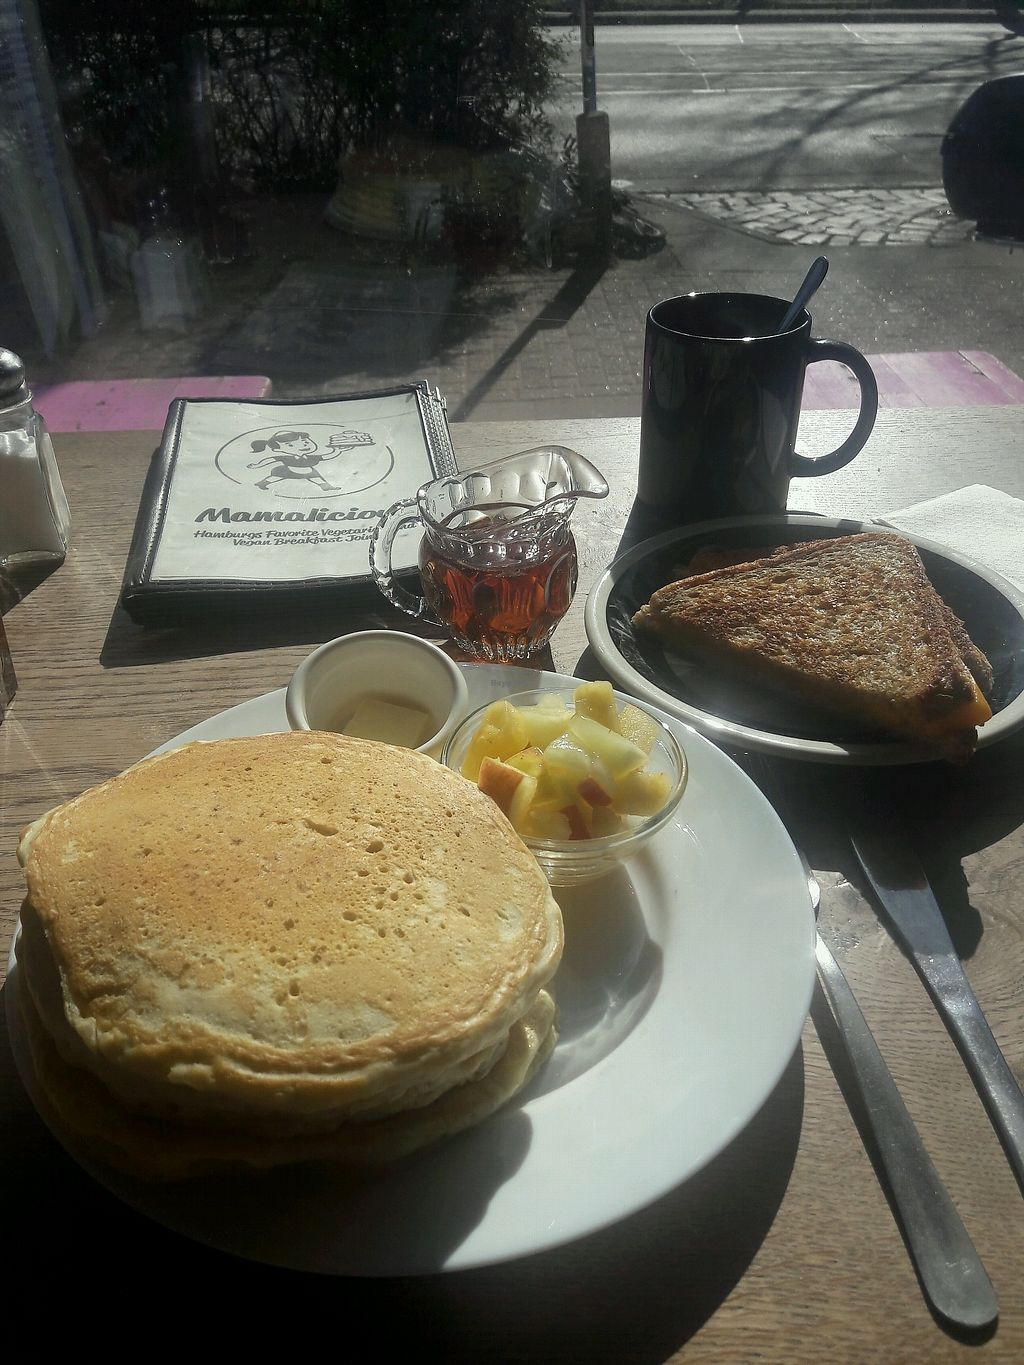 """Photo of Mamalicious  by <a href=""""/members/profile/Scarify"""">Scarify</a> <br/>pancakes and melted cheese sandwich  <br/> March 31, 2018  - <a href='/contact/abuse/image/44868/378678'>Report</a>"""